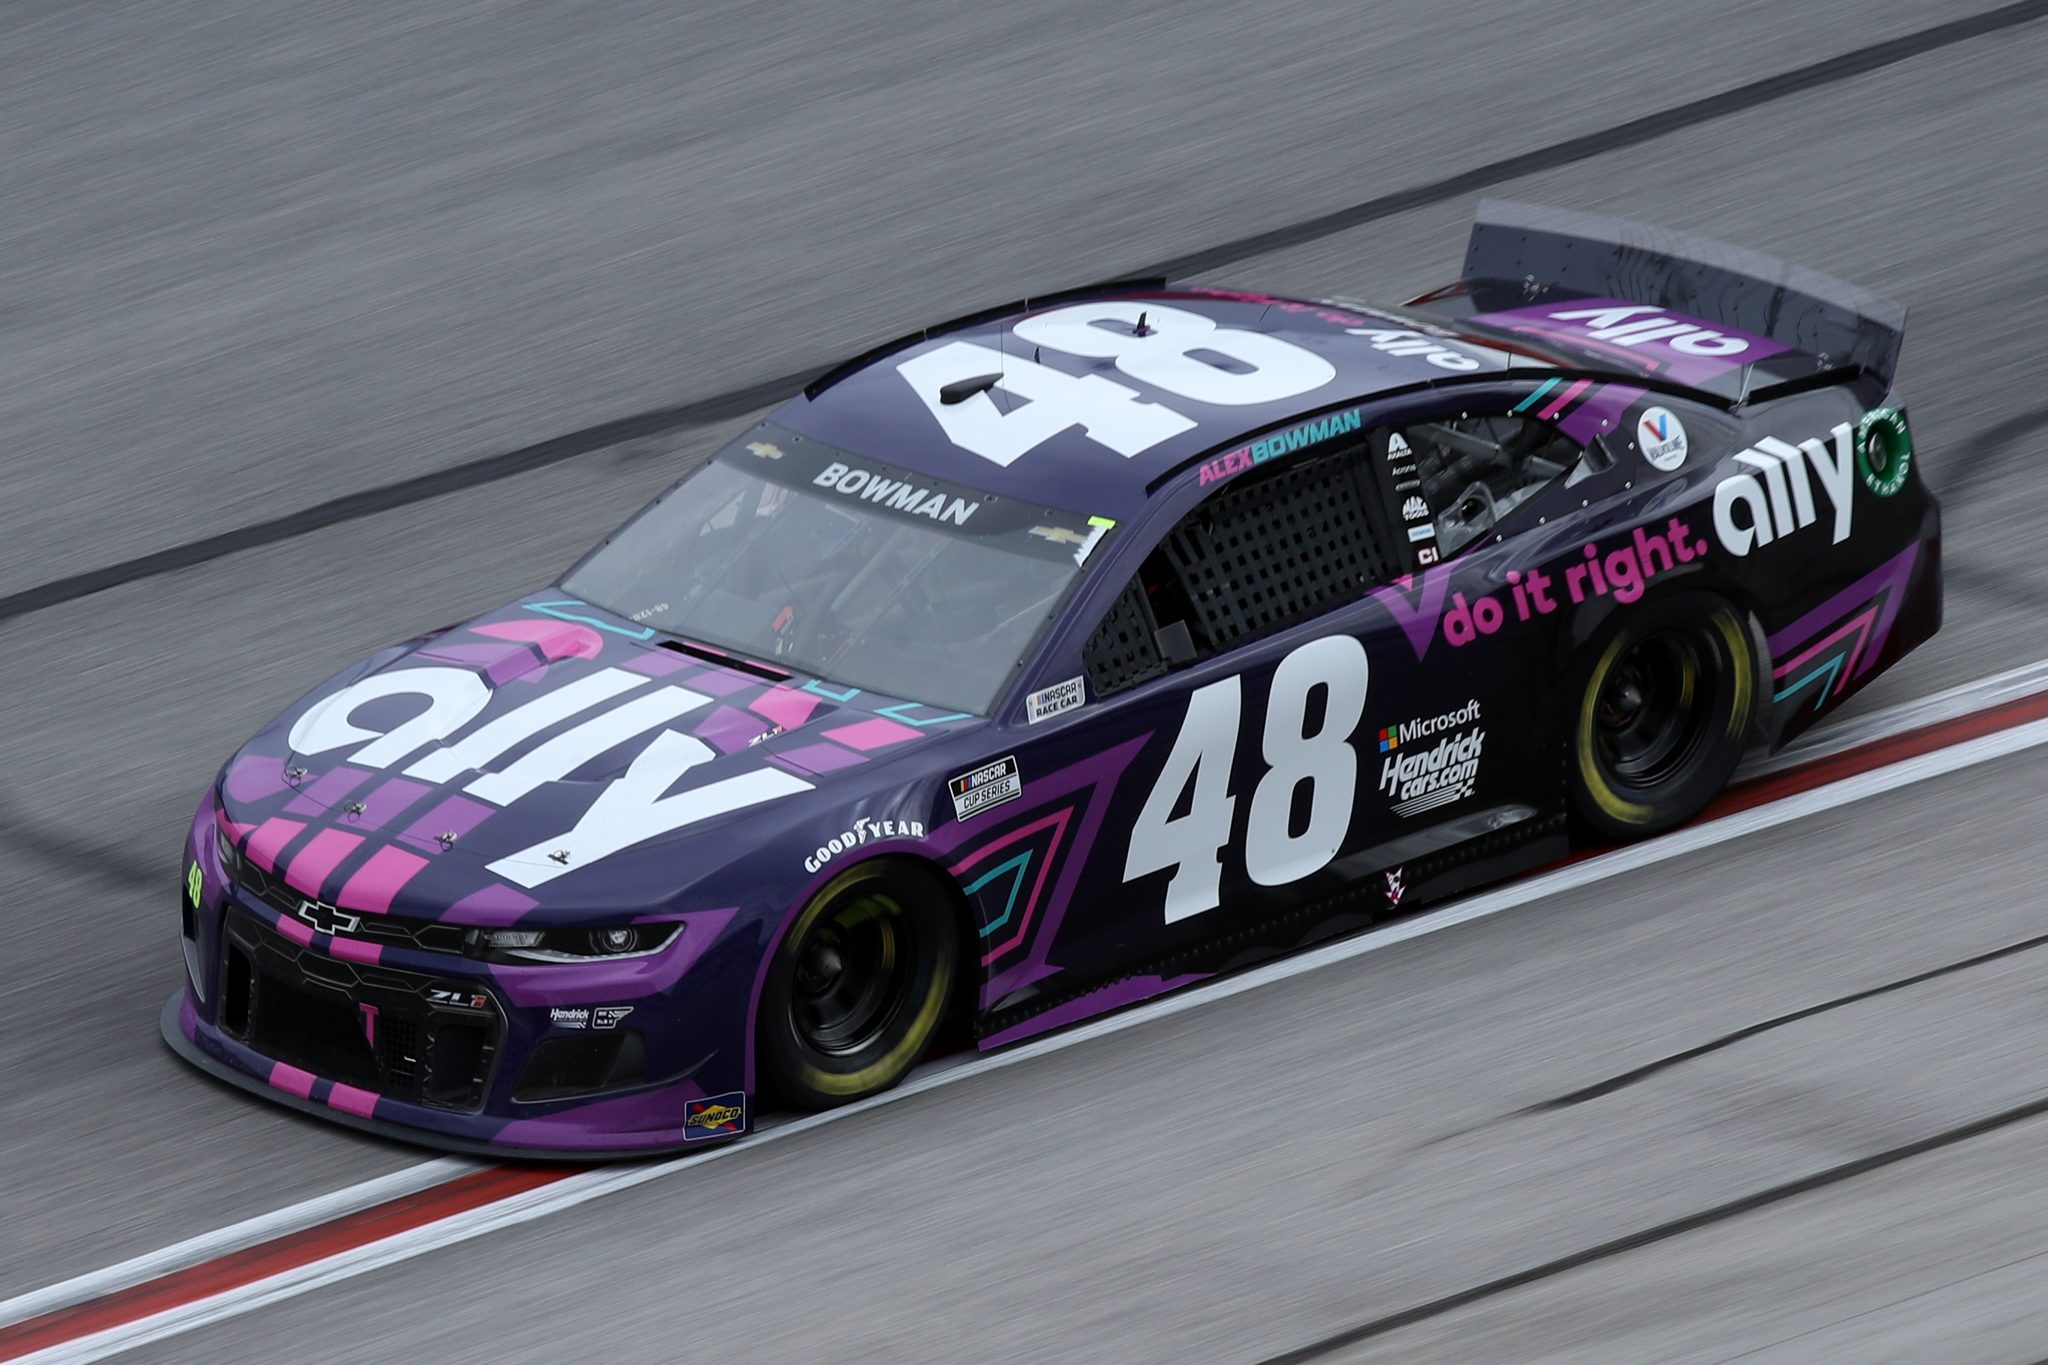 HAMPTON, GEORGIA - MARCH 21: Alex Bowman, driver of the #48 Ally Chevrolet, drives during the NASCAR Cup Series Folds of Honor QuikTrip 500 at Atlanta Motor Speedway on March 21, 2021 in Hampton, Georgia. (Photo by Sean Gardner/Getty Images) | Getty Images